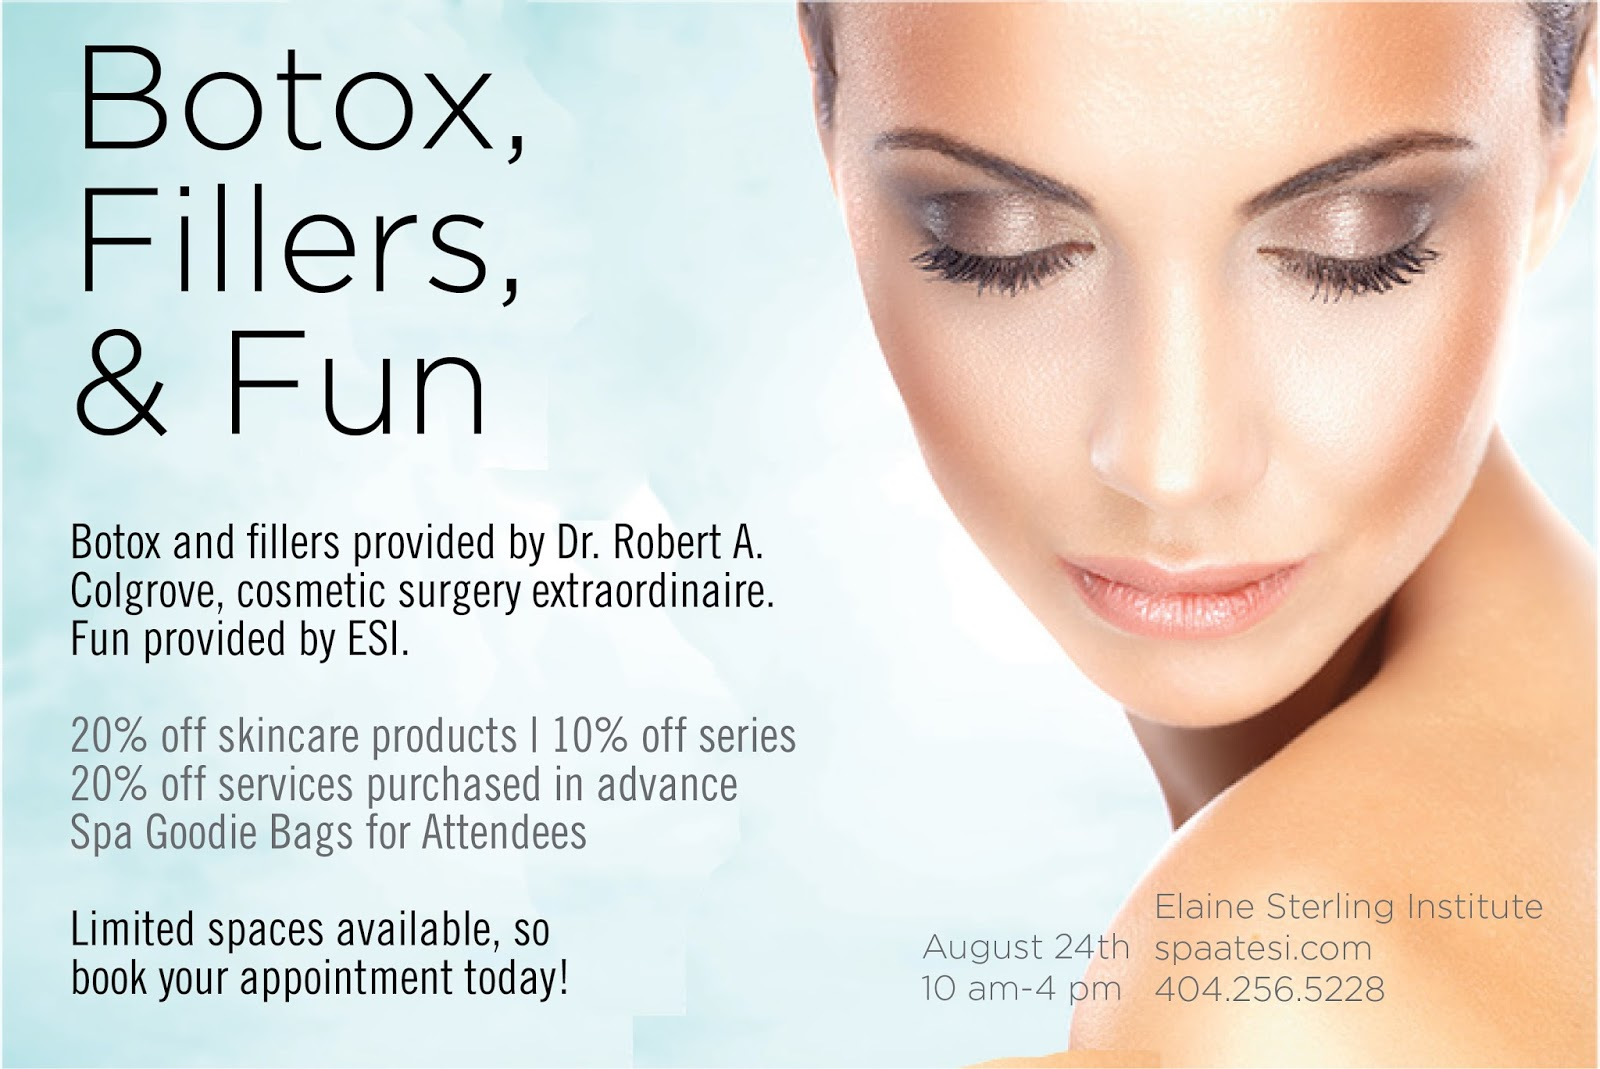 Elaine Sterling Skincare Institute: Botox, Fillers, and Fun